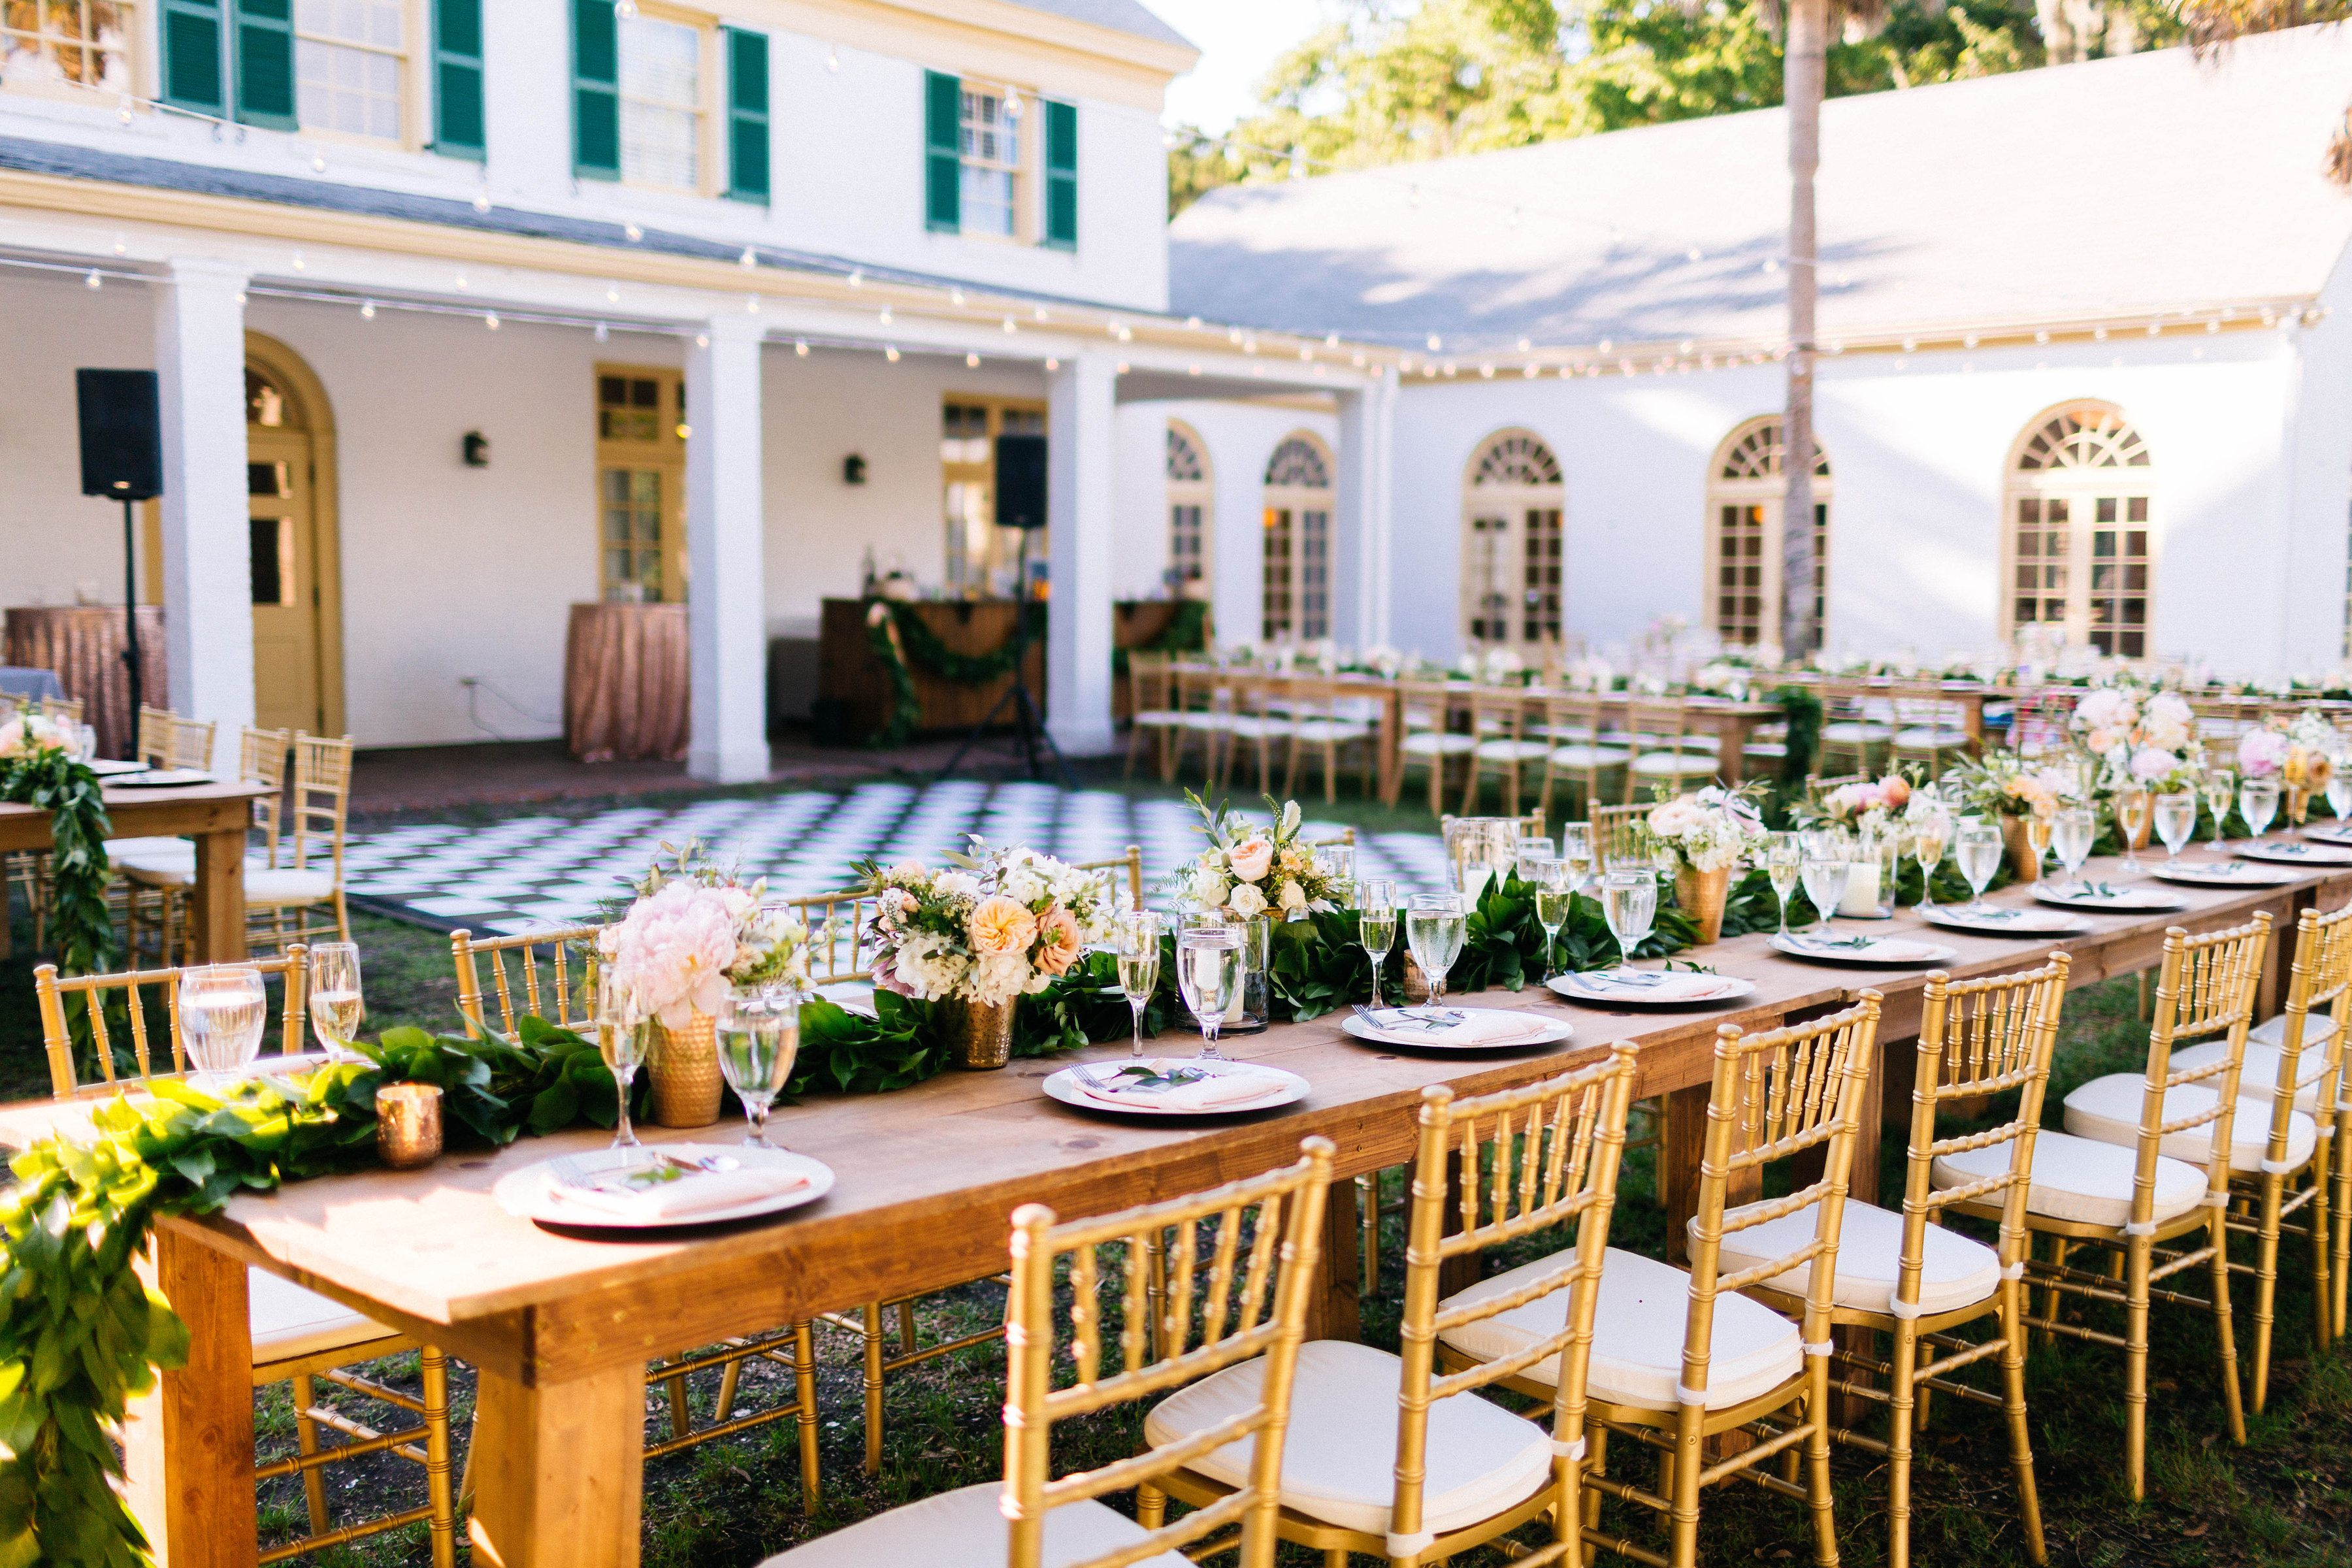 wedding chair hire algarve easy dimensions our very own black white checkered dance floor christina karst photography luxe party rentals www luxepartyrentals com